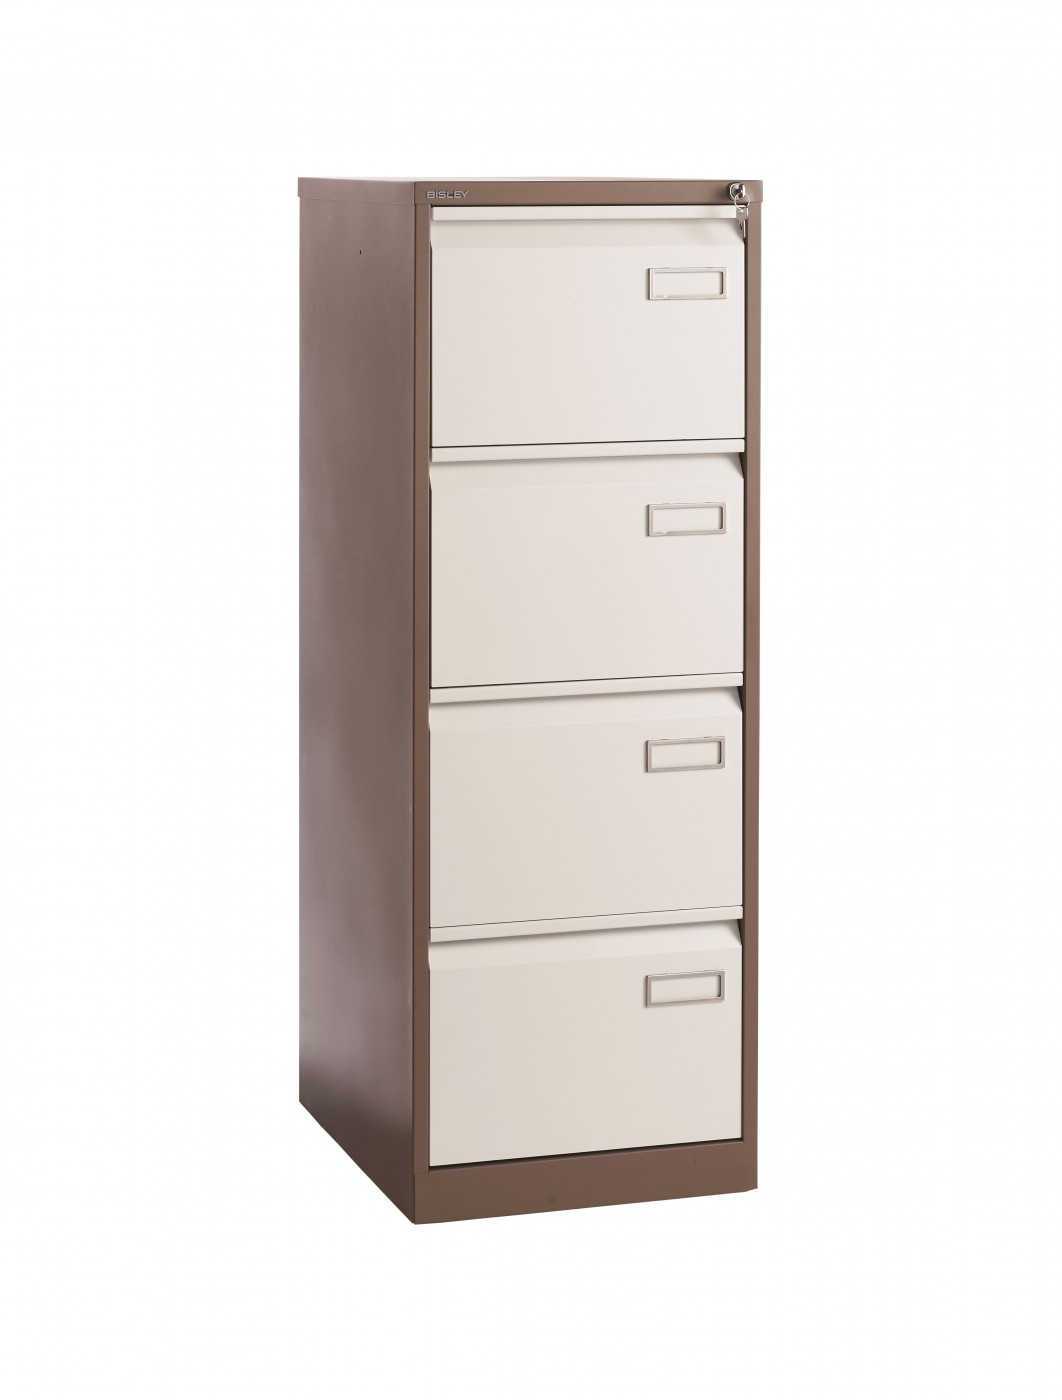 Brilliant Bisley File Cabinet for Best File Storage Ideas: Bisley File Cabinet | Locking Two Drawer File Cabinet | 10 Drawer Filing Cabinet